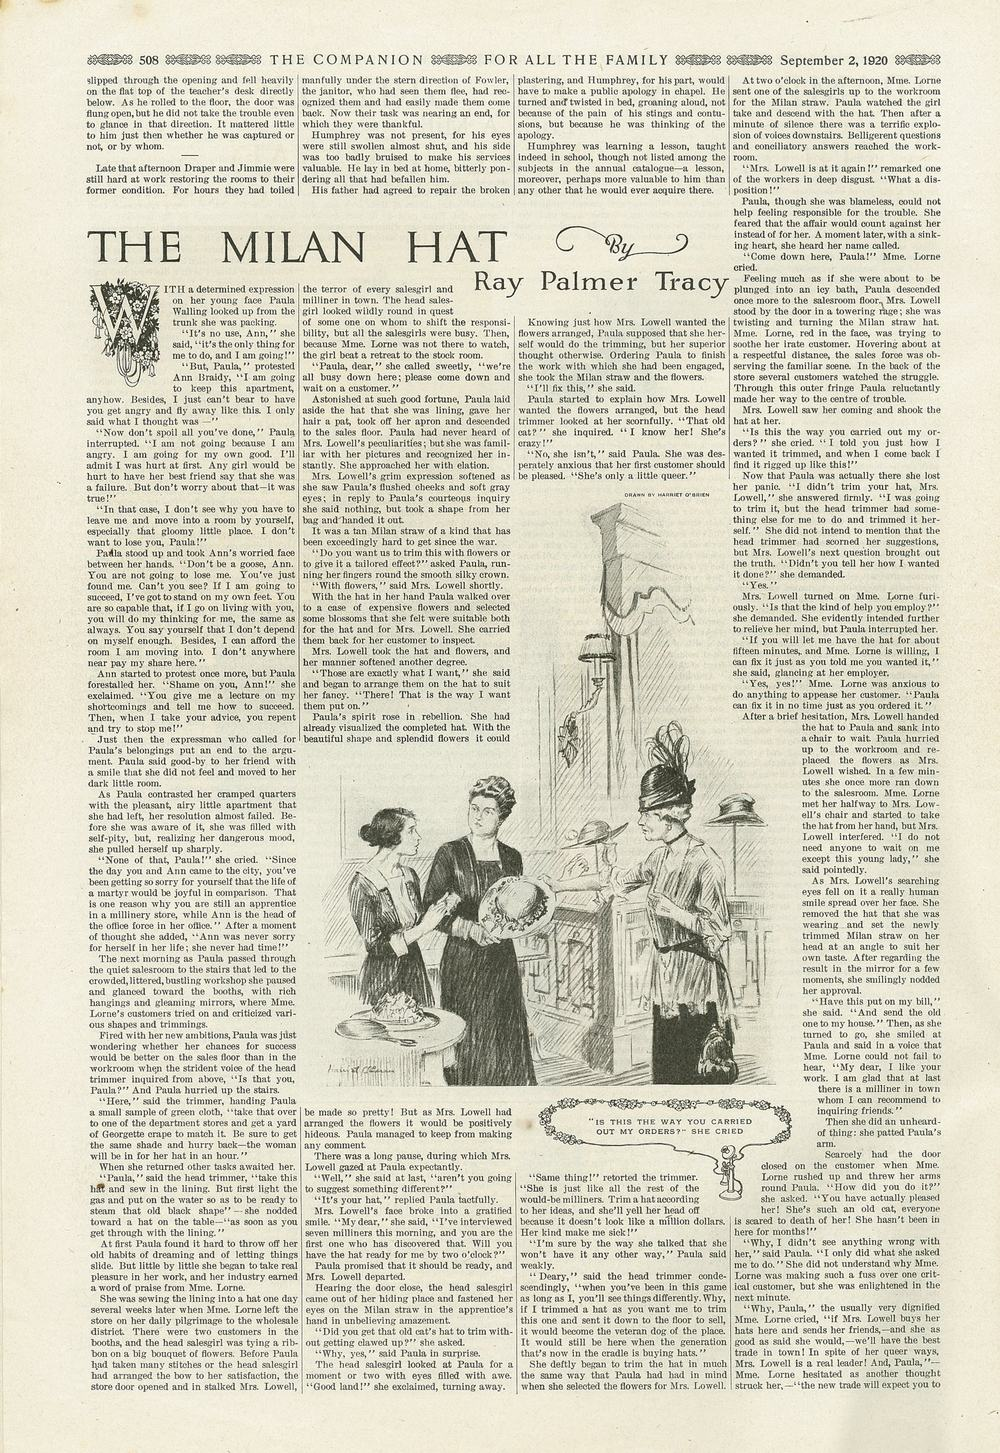 The Youth's Companion - September 2nd, 1920 - Vol. 94 - No. 36